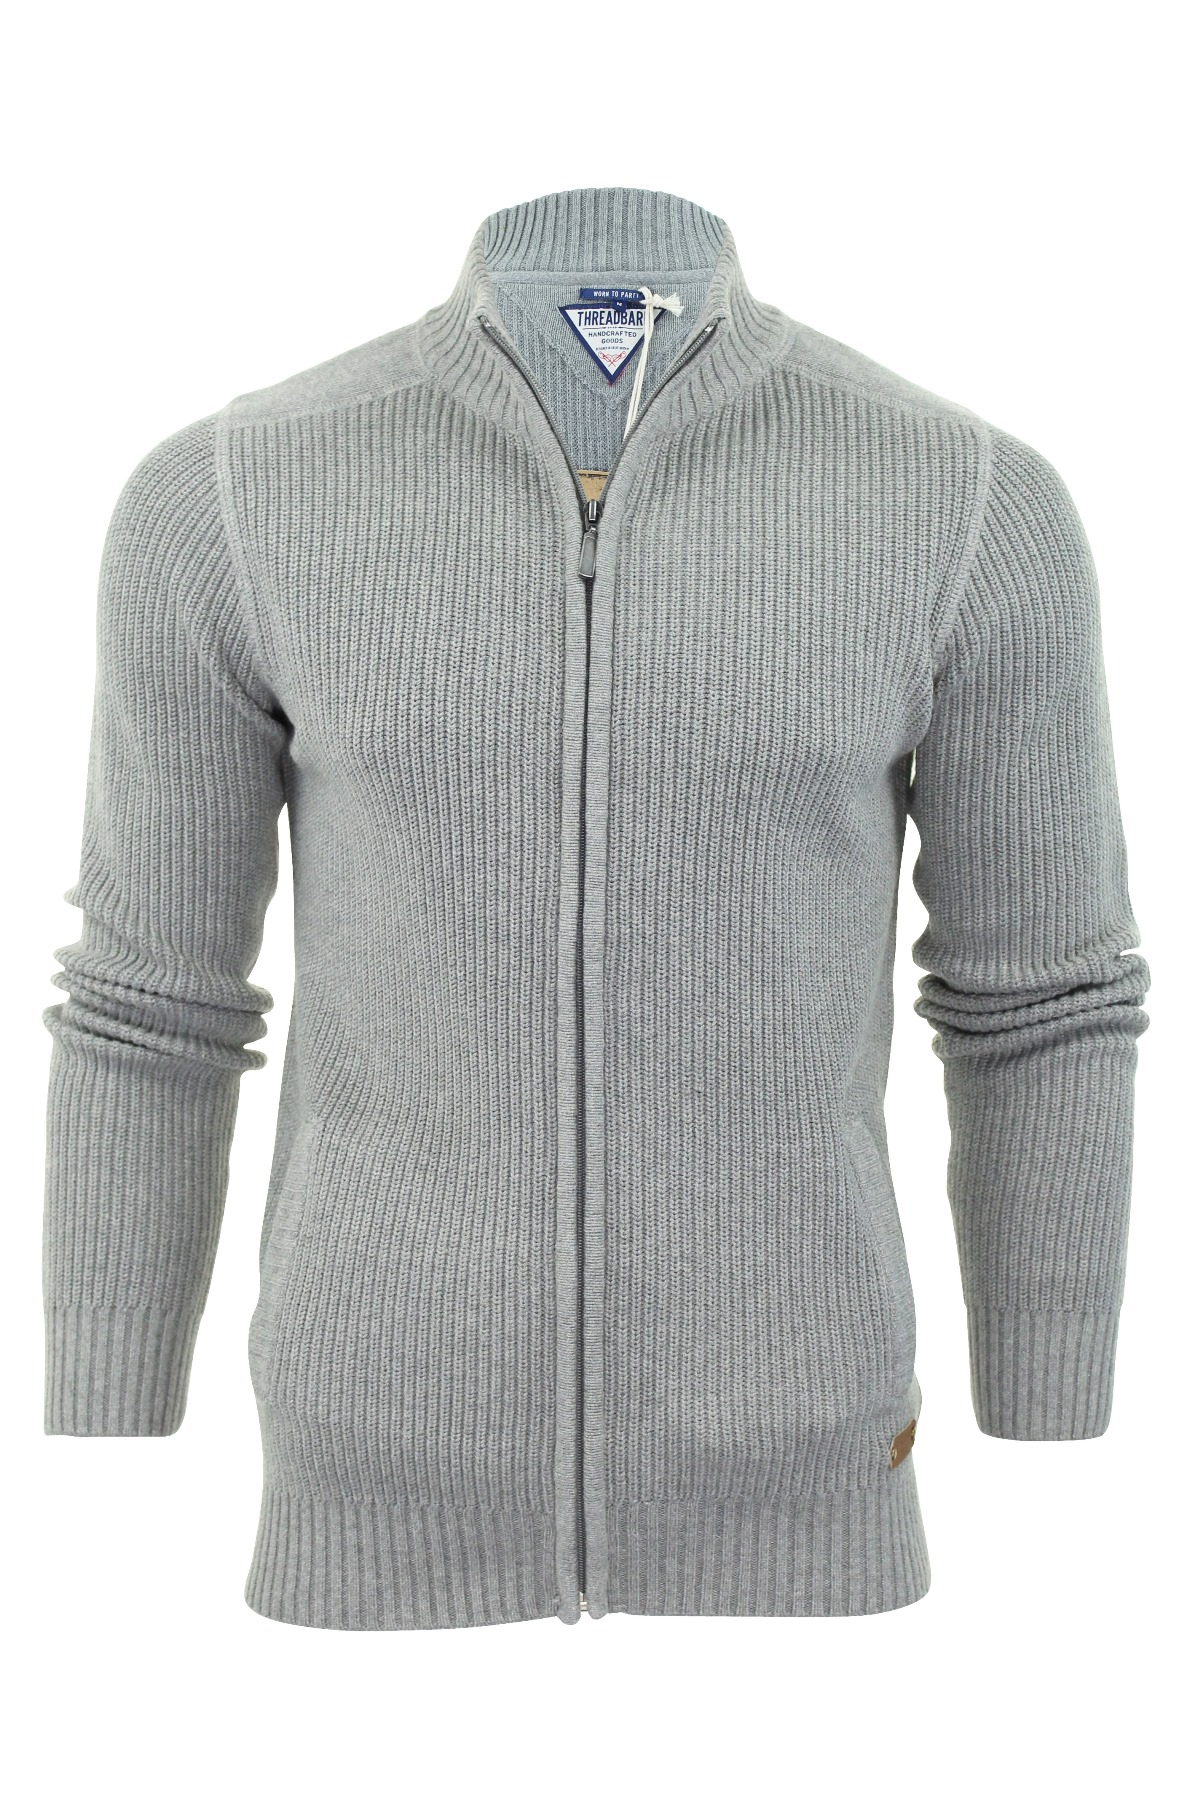 Mens jumper Zip Up Cardigan by Threadbare 'Visage' Cotton Knit ...